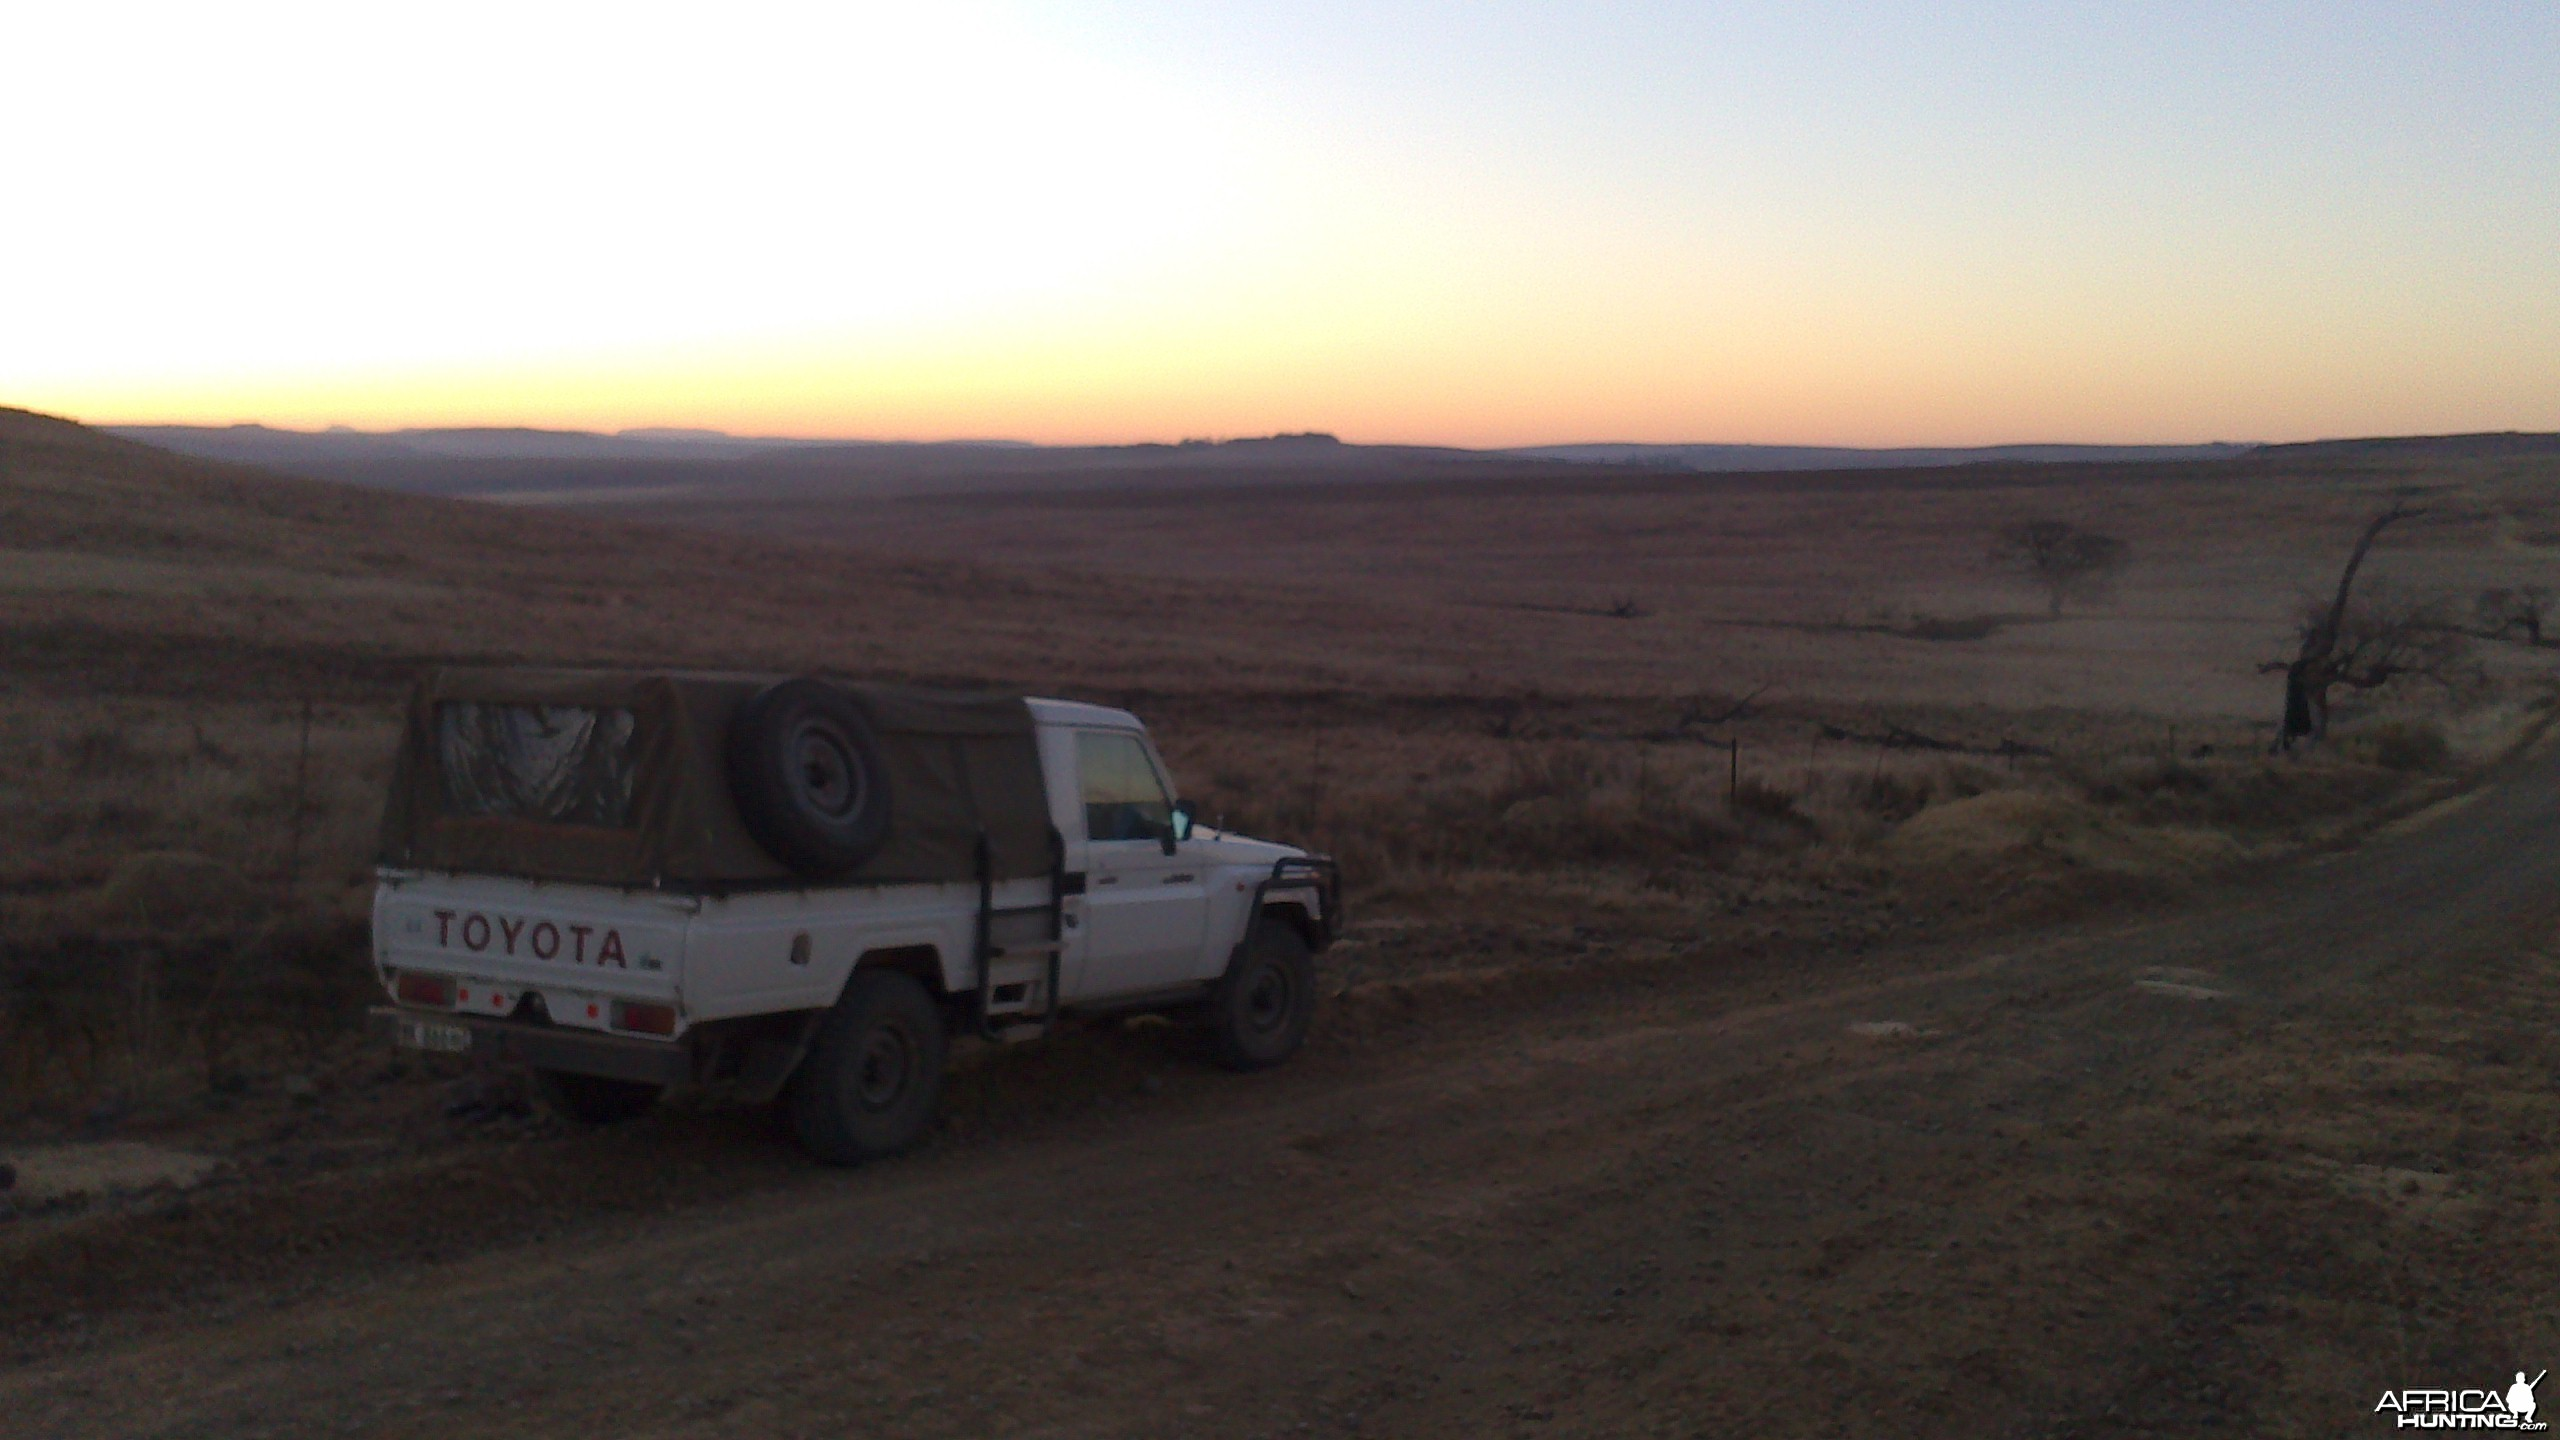 Land Cruiser and a beautiful view